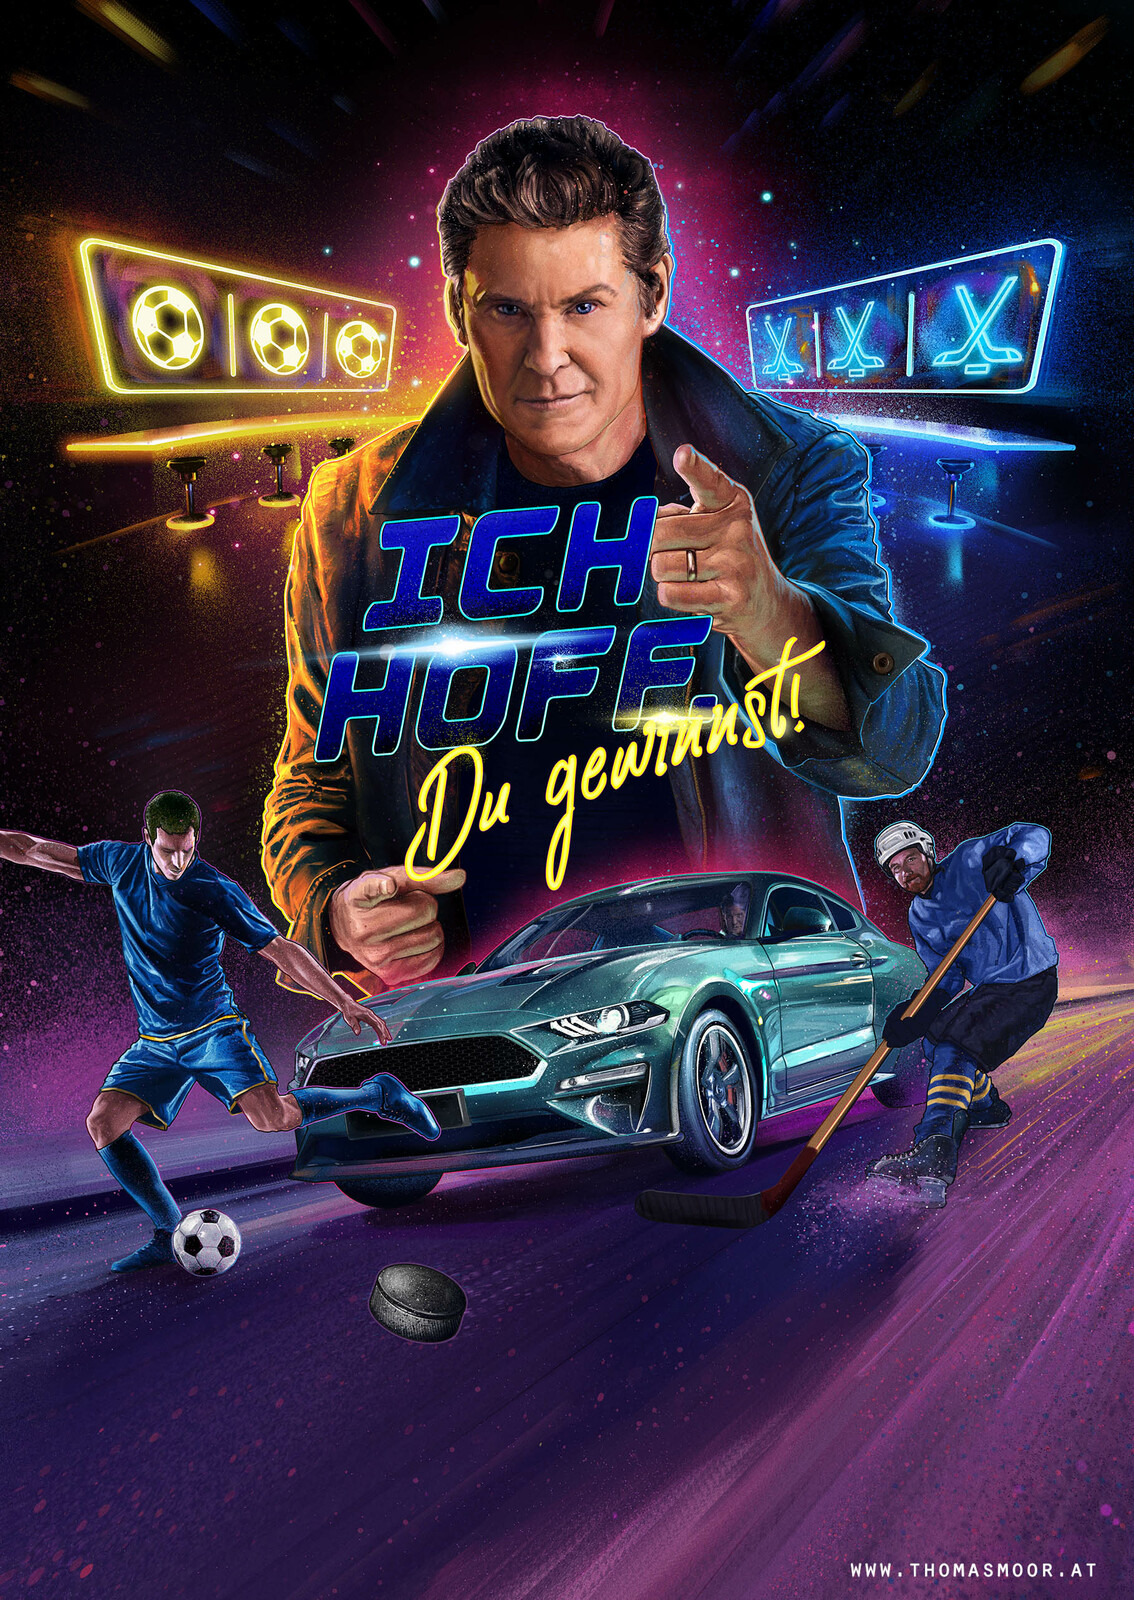 this is the version the client went for, with a slightly younger Hoff